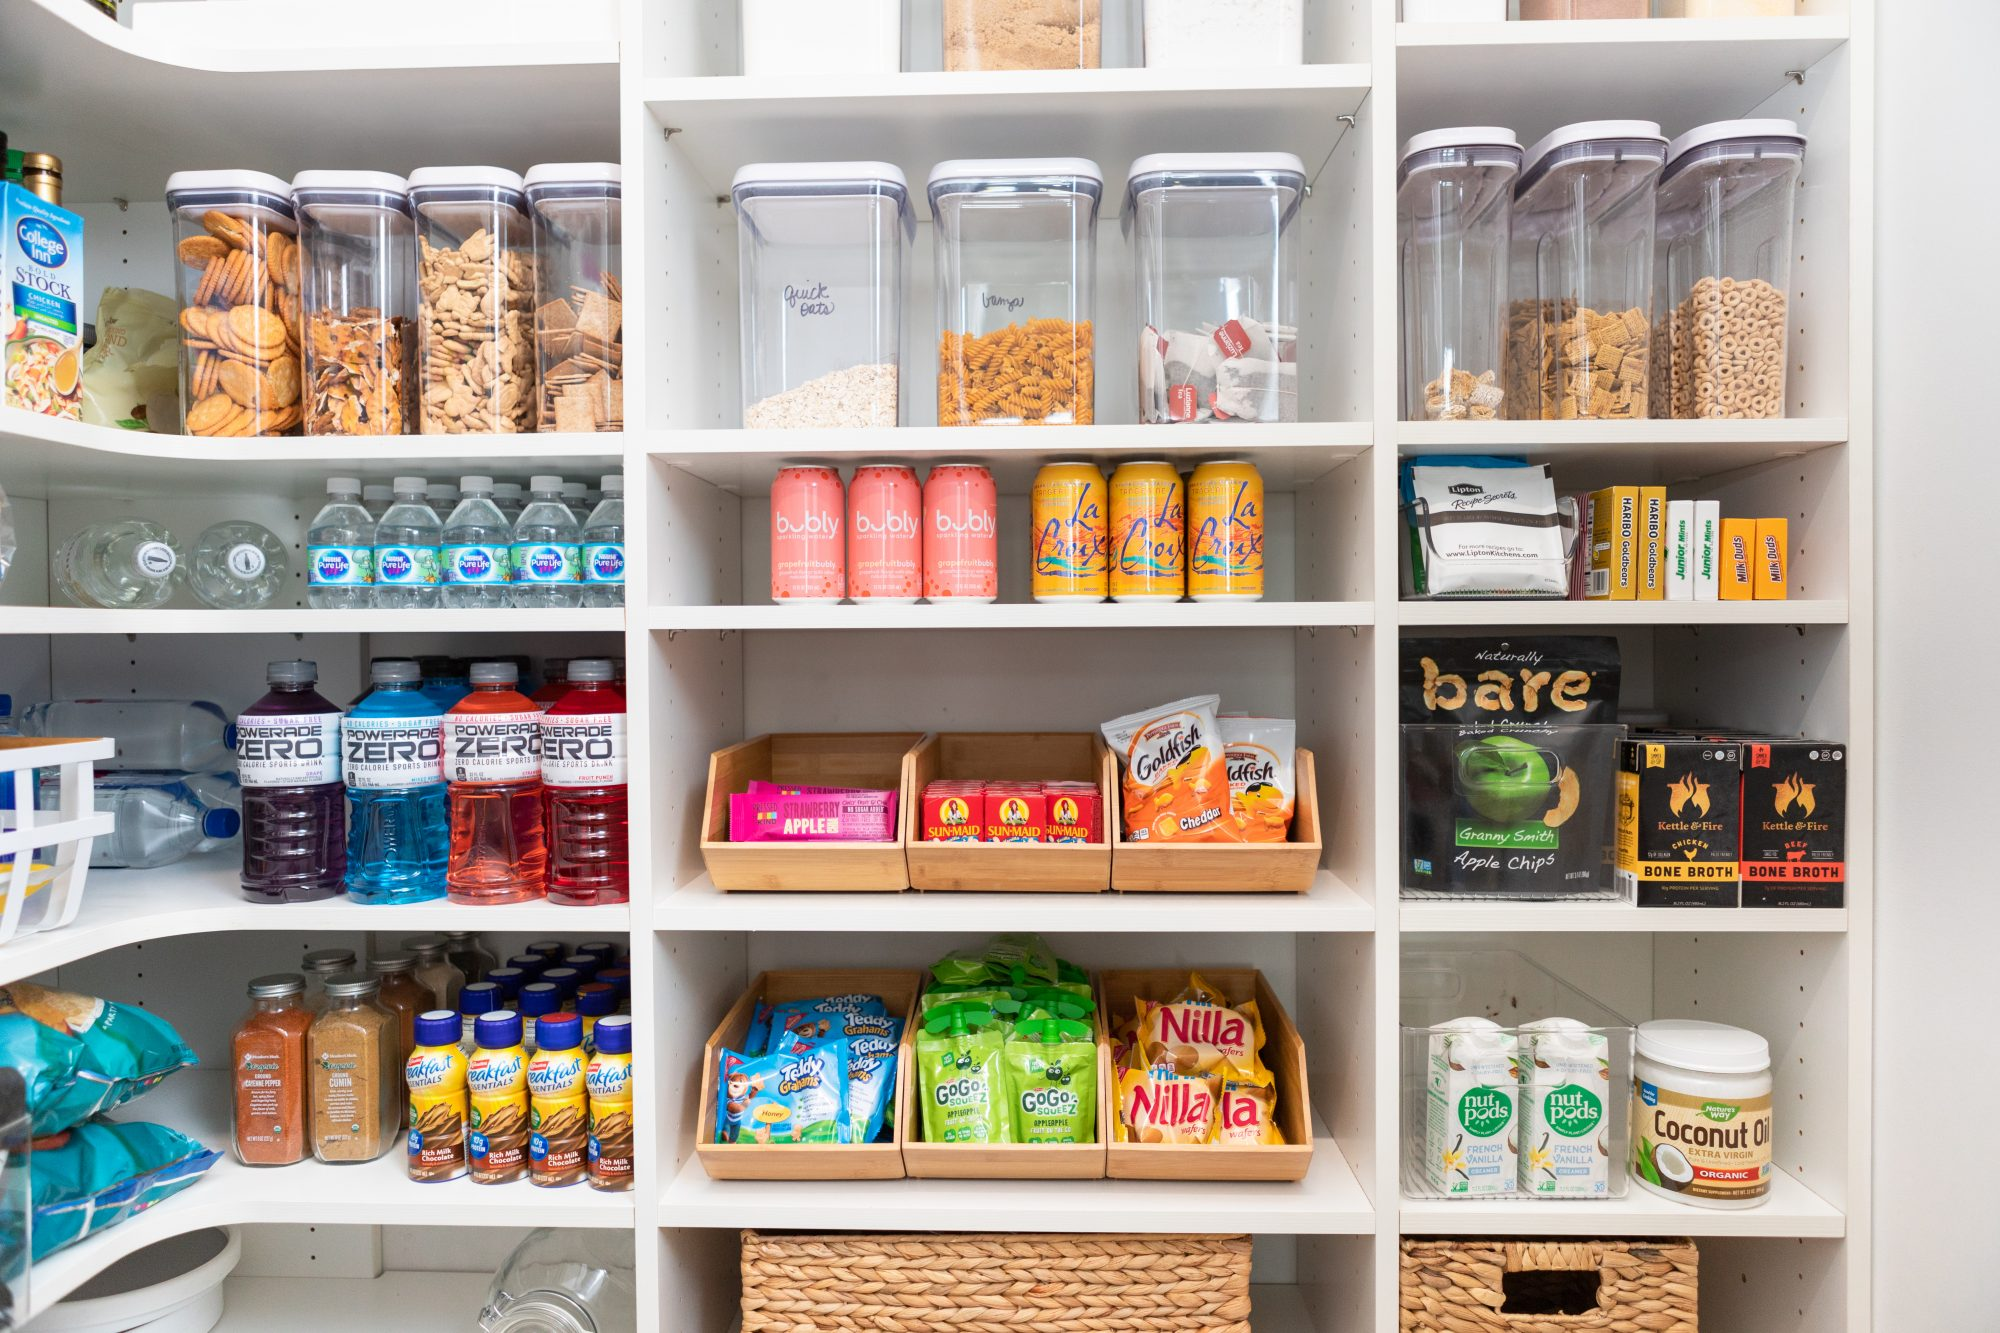 The 3 Best Rules for Organizing Your Pantry